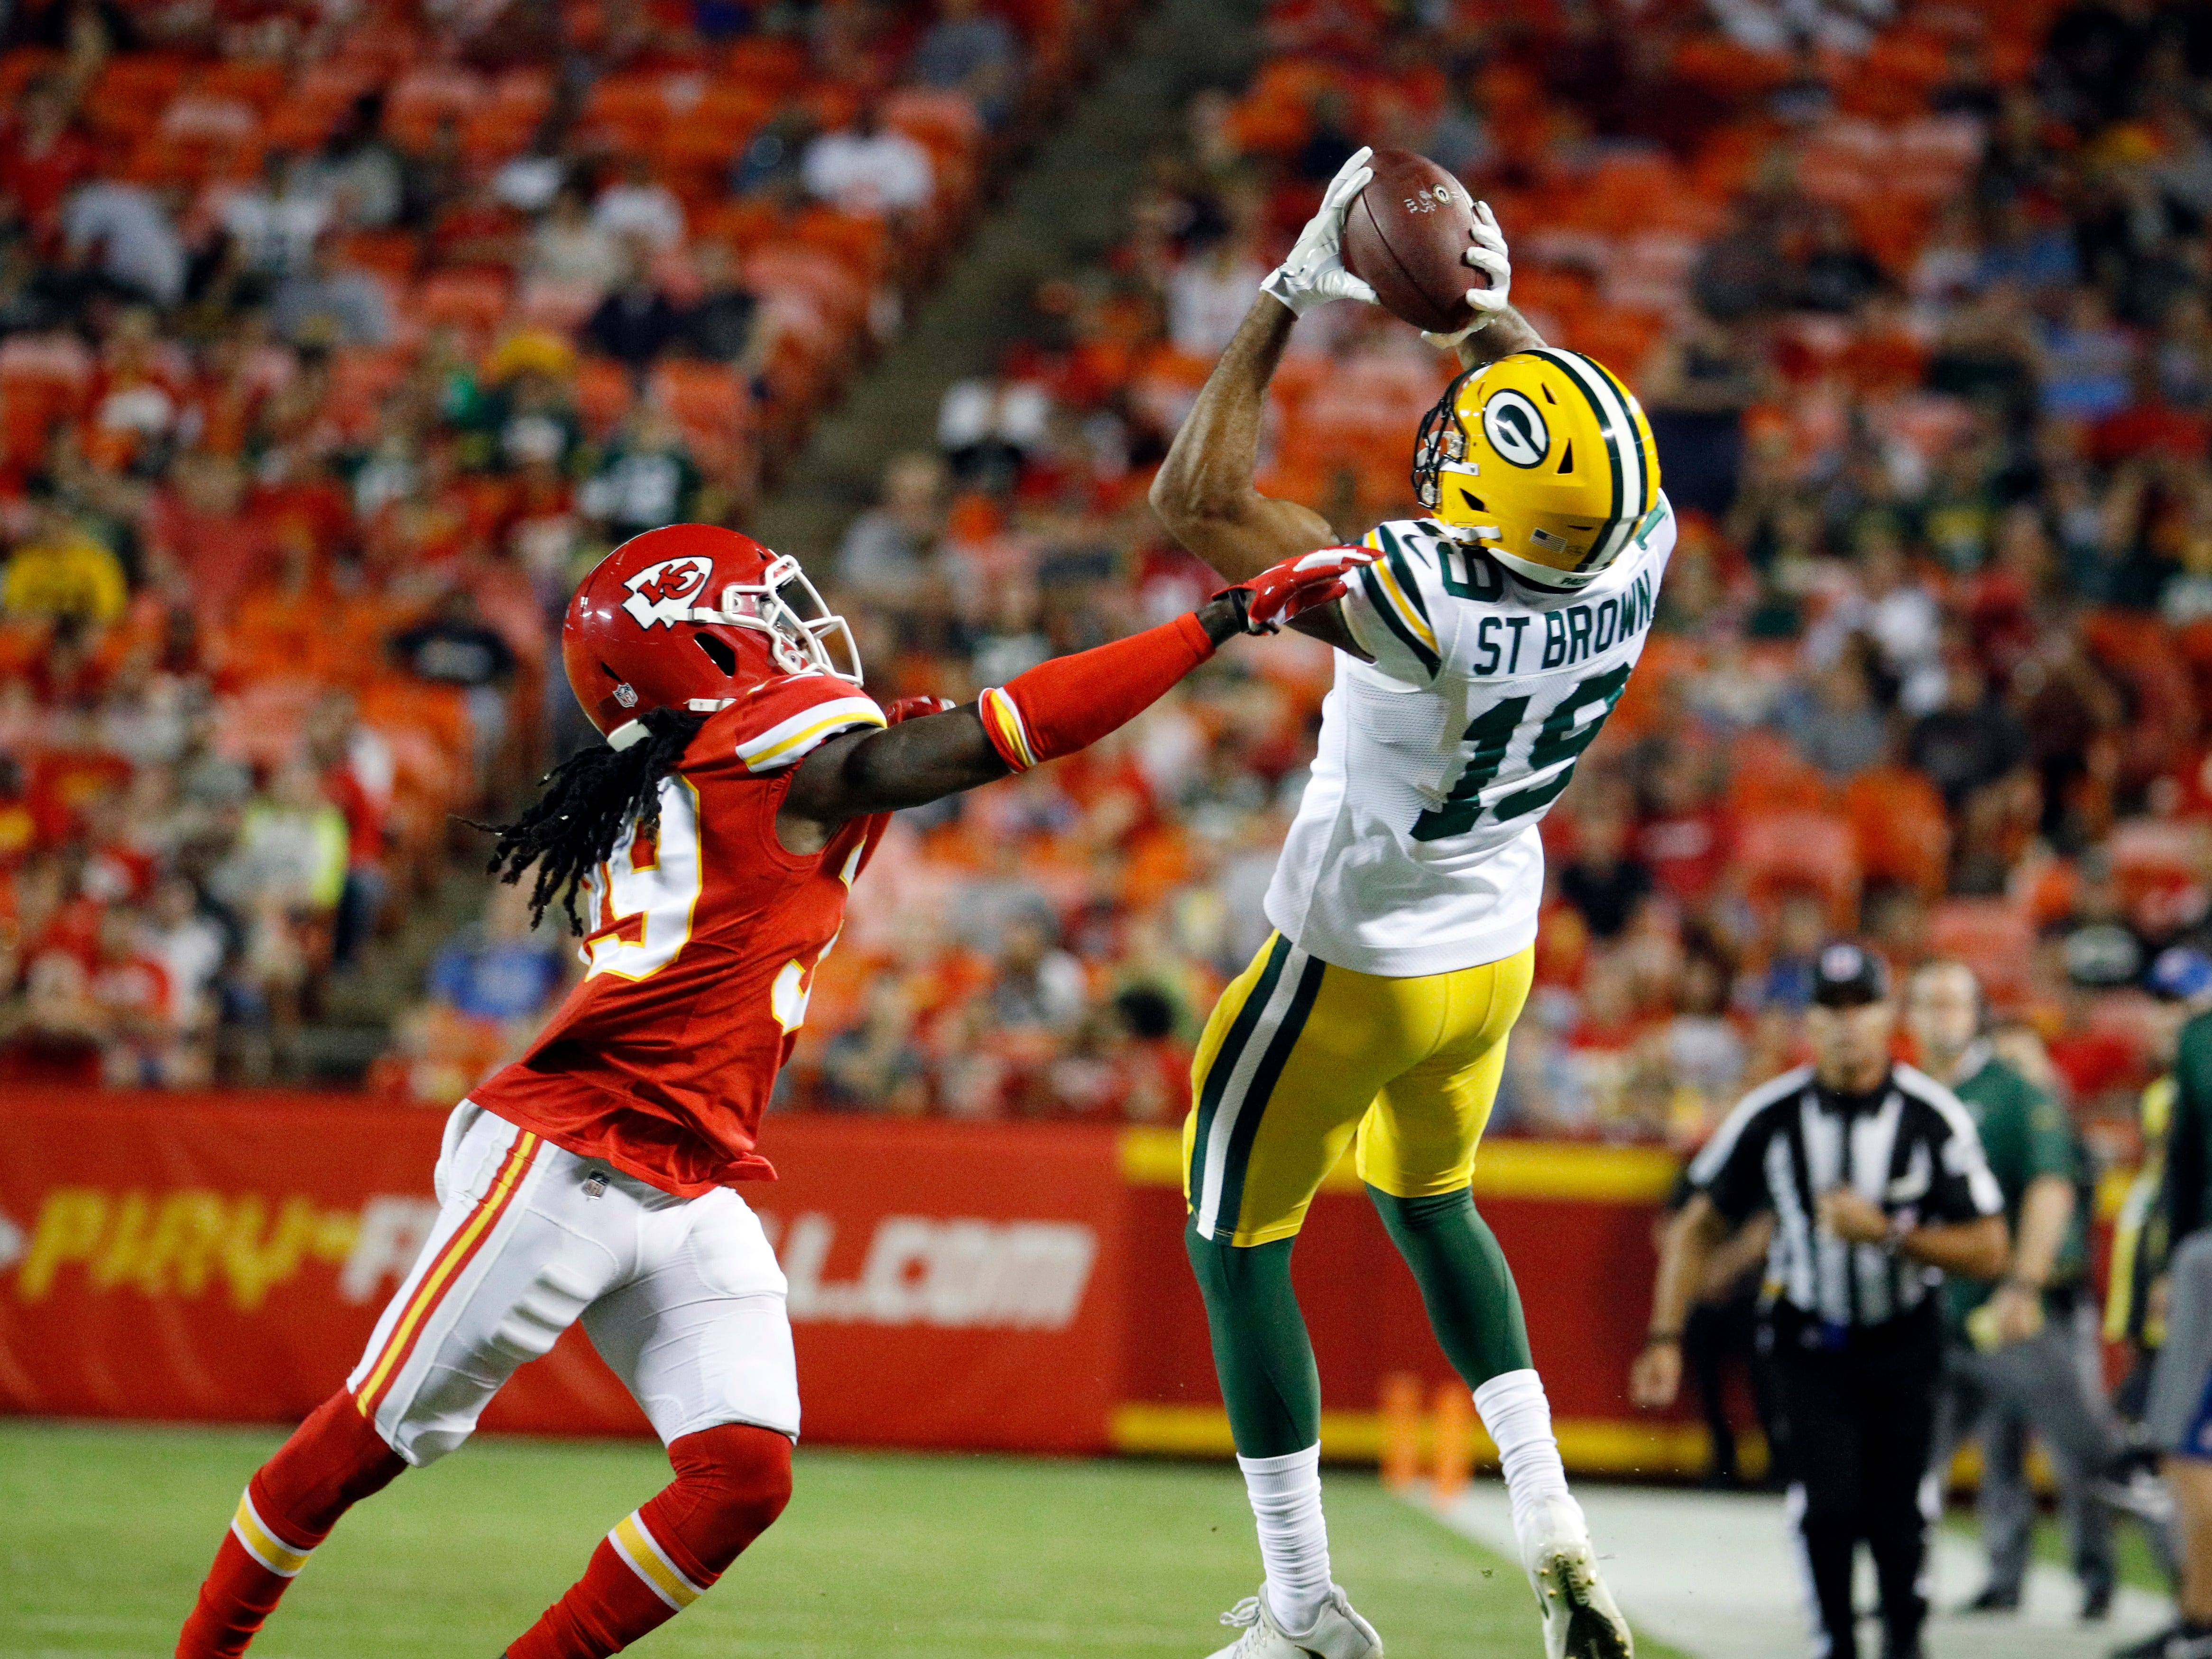 Green Bay Packers wide receiver Equanimeous St. Brown (19) makes a catch over Kansas City Chiefs cornerback Tremon Smith (39) during the first half of an NFL preseason football game in Kansas City, Mo., Thursday, Aug. 30, 2018.